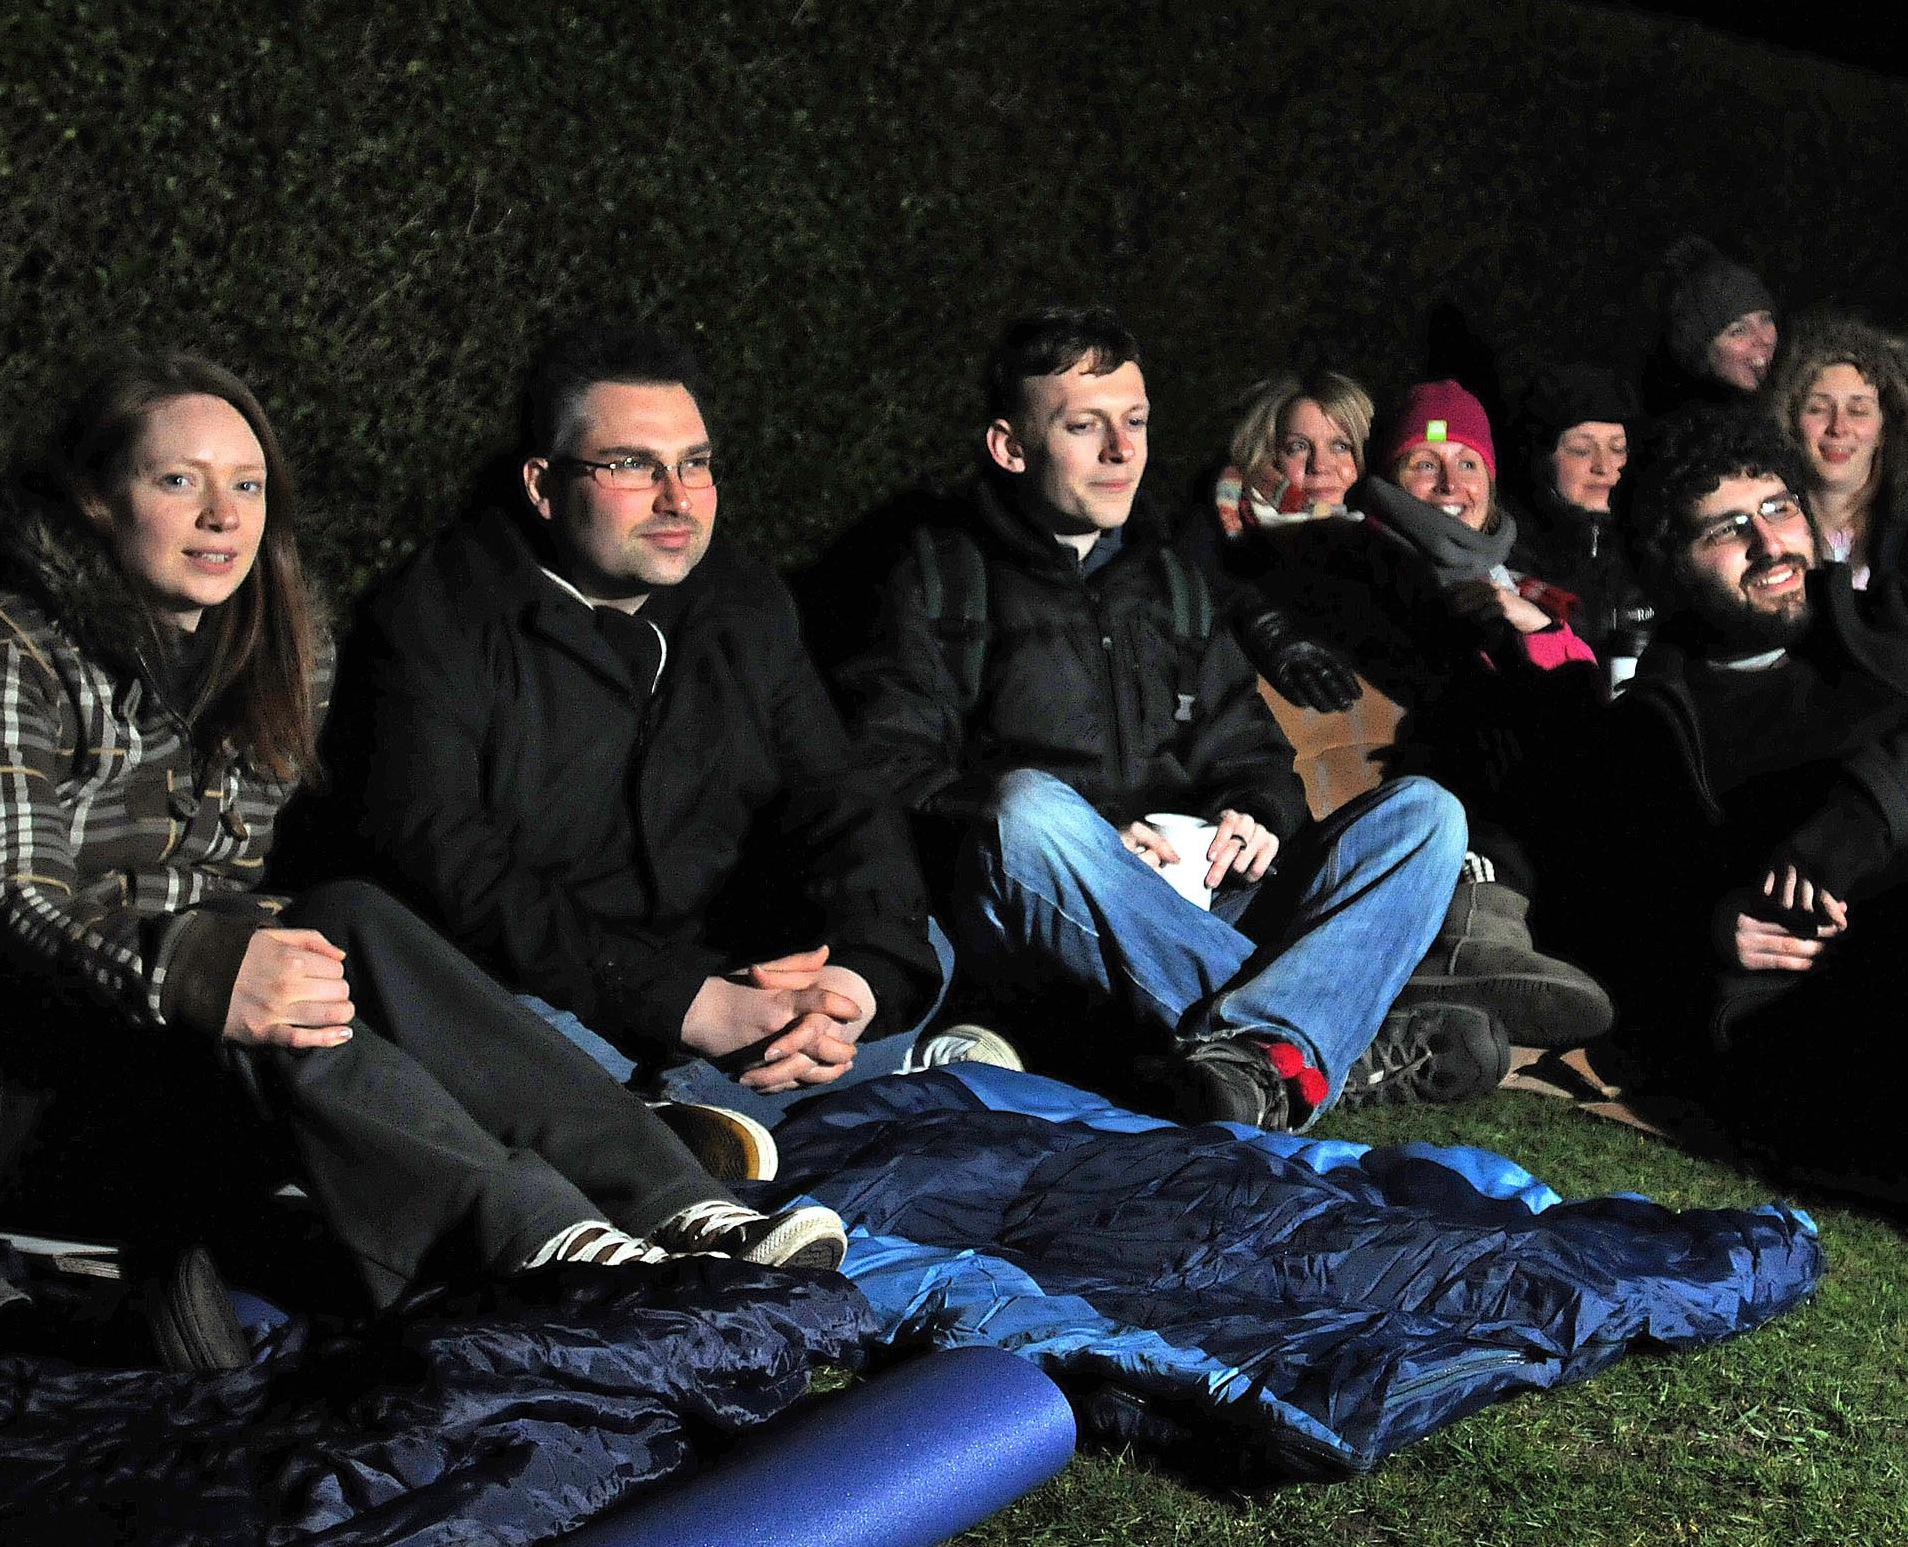 NIGHT WATCH: City of York Council leader James Alexander, second left, joins people on the SASH sleepout at The Homestead in York.  Picture: David Harrison